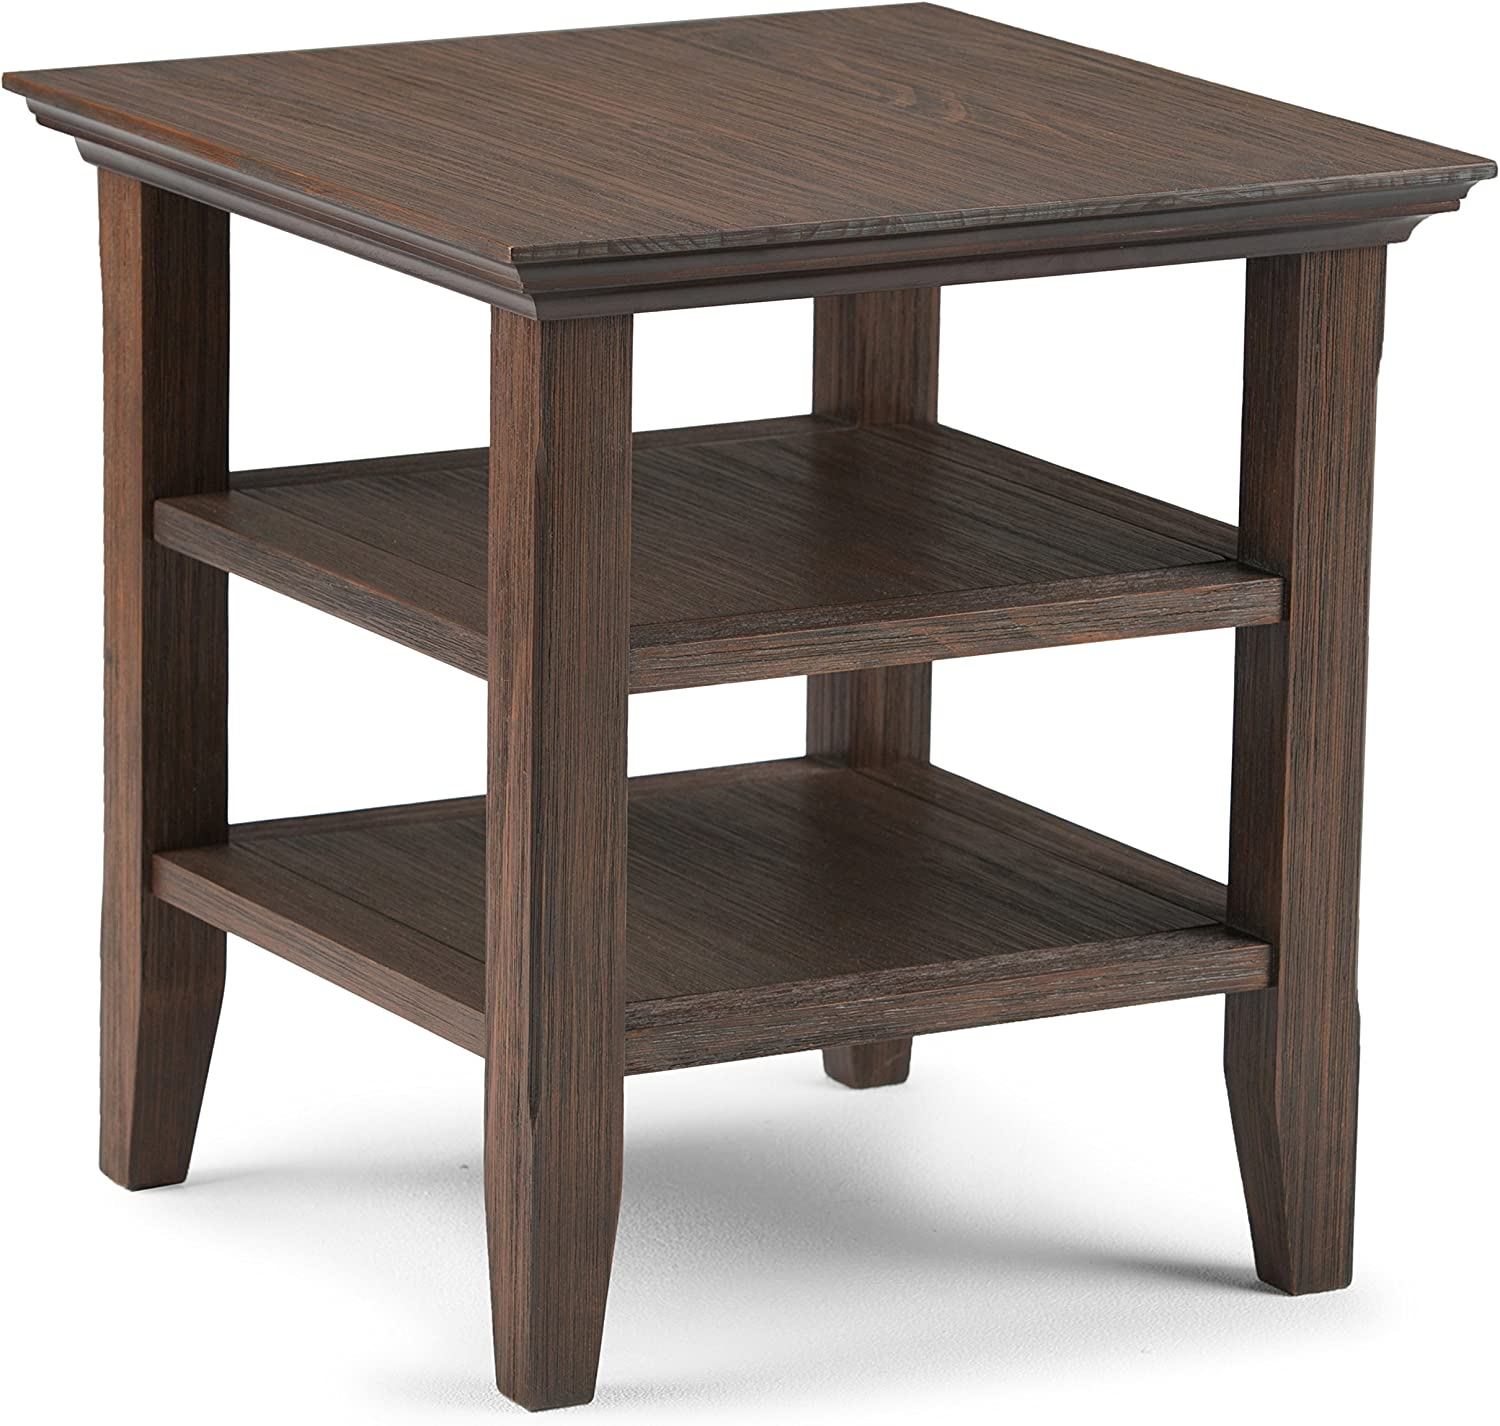 Simpli Home AXWELL3-003-FB Acadian Solid Wood 19 inch Wide Square Rustic End Table in Farmhouse Brown